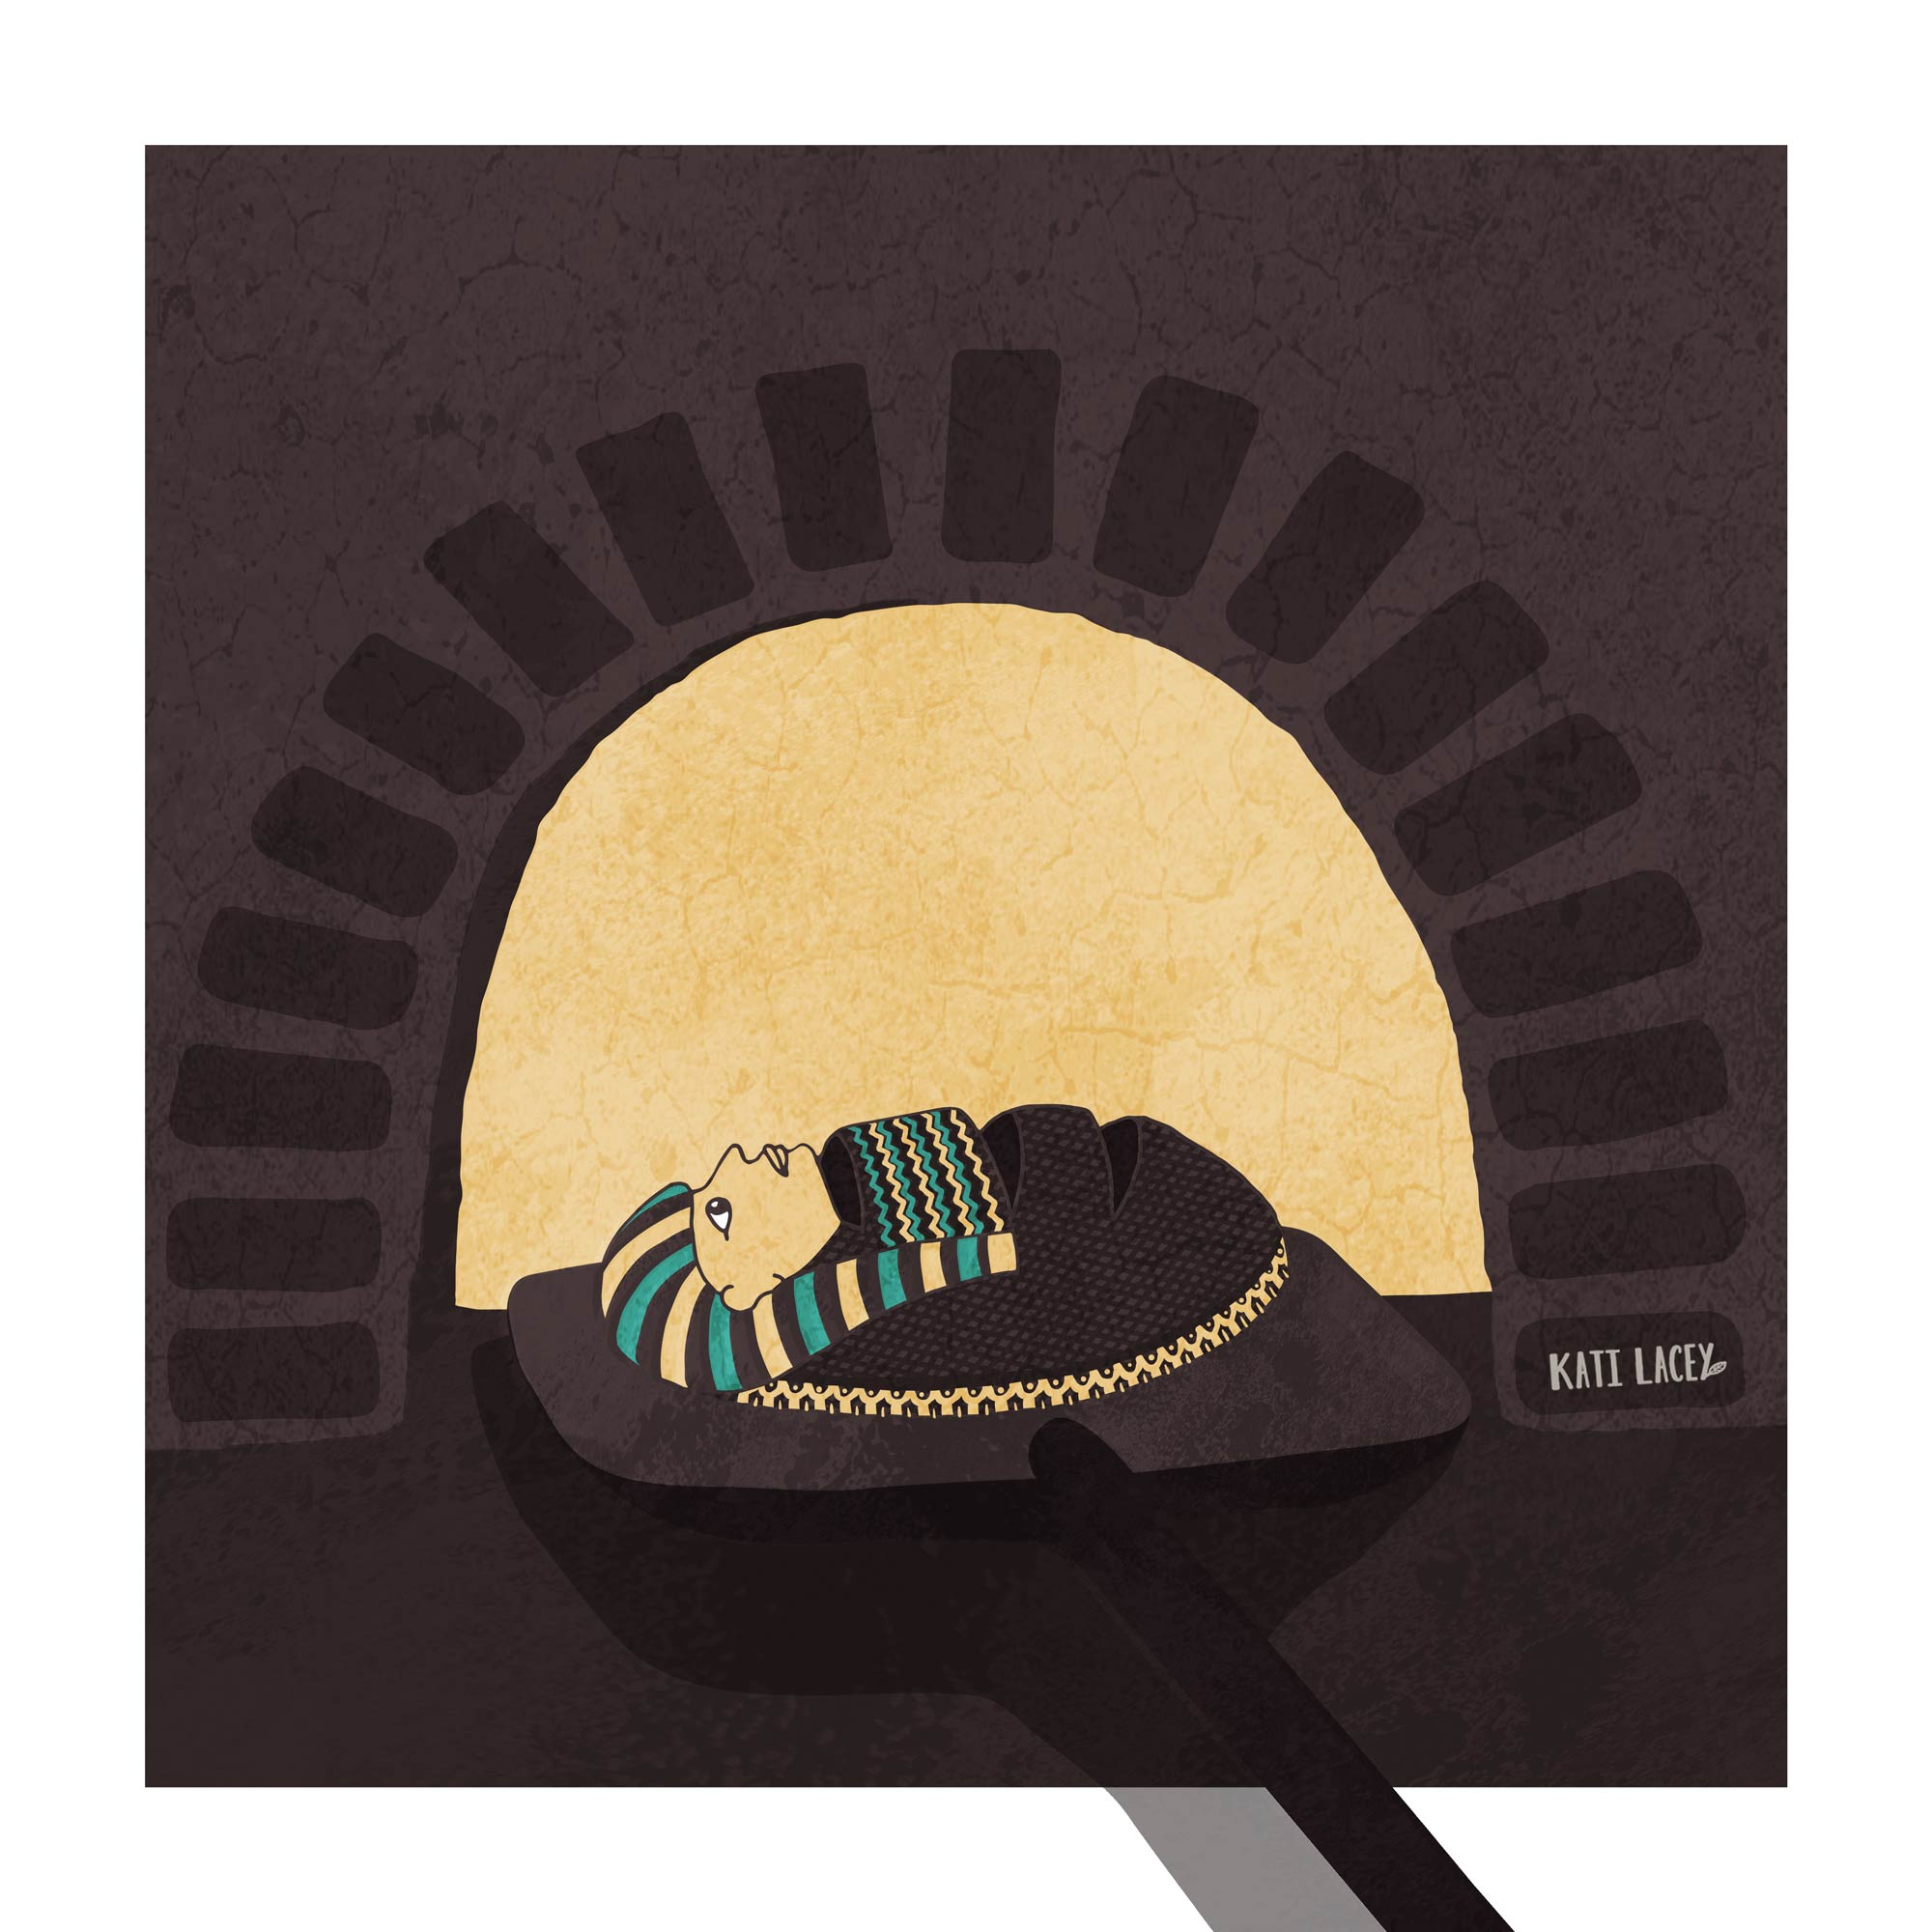 Editorial illustration for an article about tasting history though bread baked with ancient yeast depicting a loaf of bread that also looks like an Egyptian mummy being taken out of a hot oven. Grain, Eating, Healthy Lifestyle, Recipe, Food, Vegetarian, Vegan, Seamus Blackley, Egypt-Egyptian-Ancient